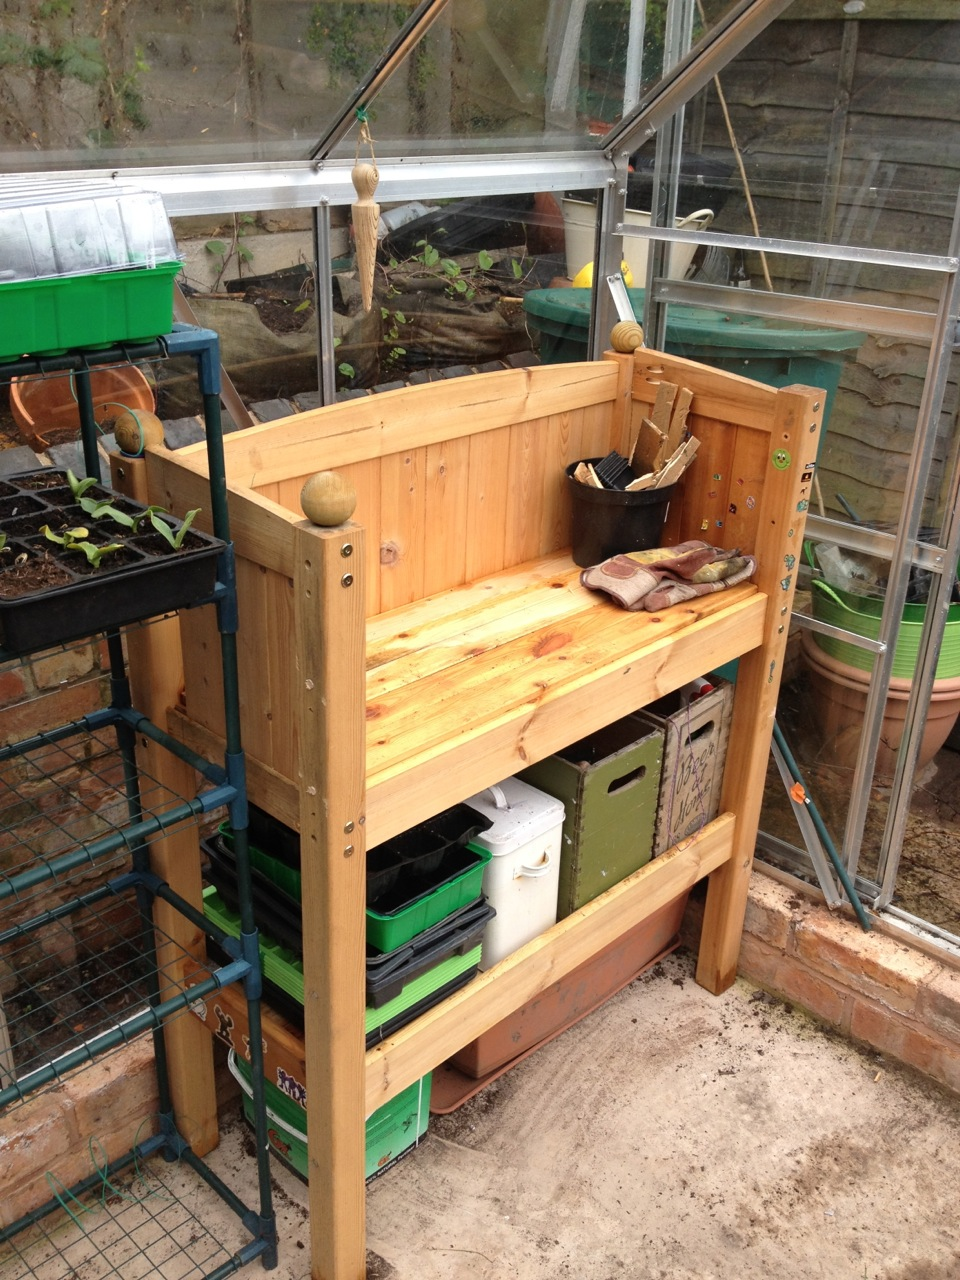 Recycling Cabin Bed into a Potting Bench